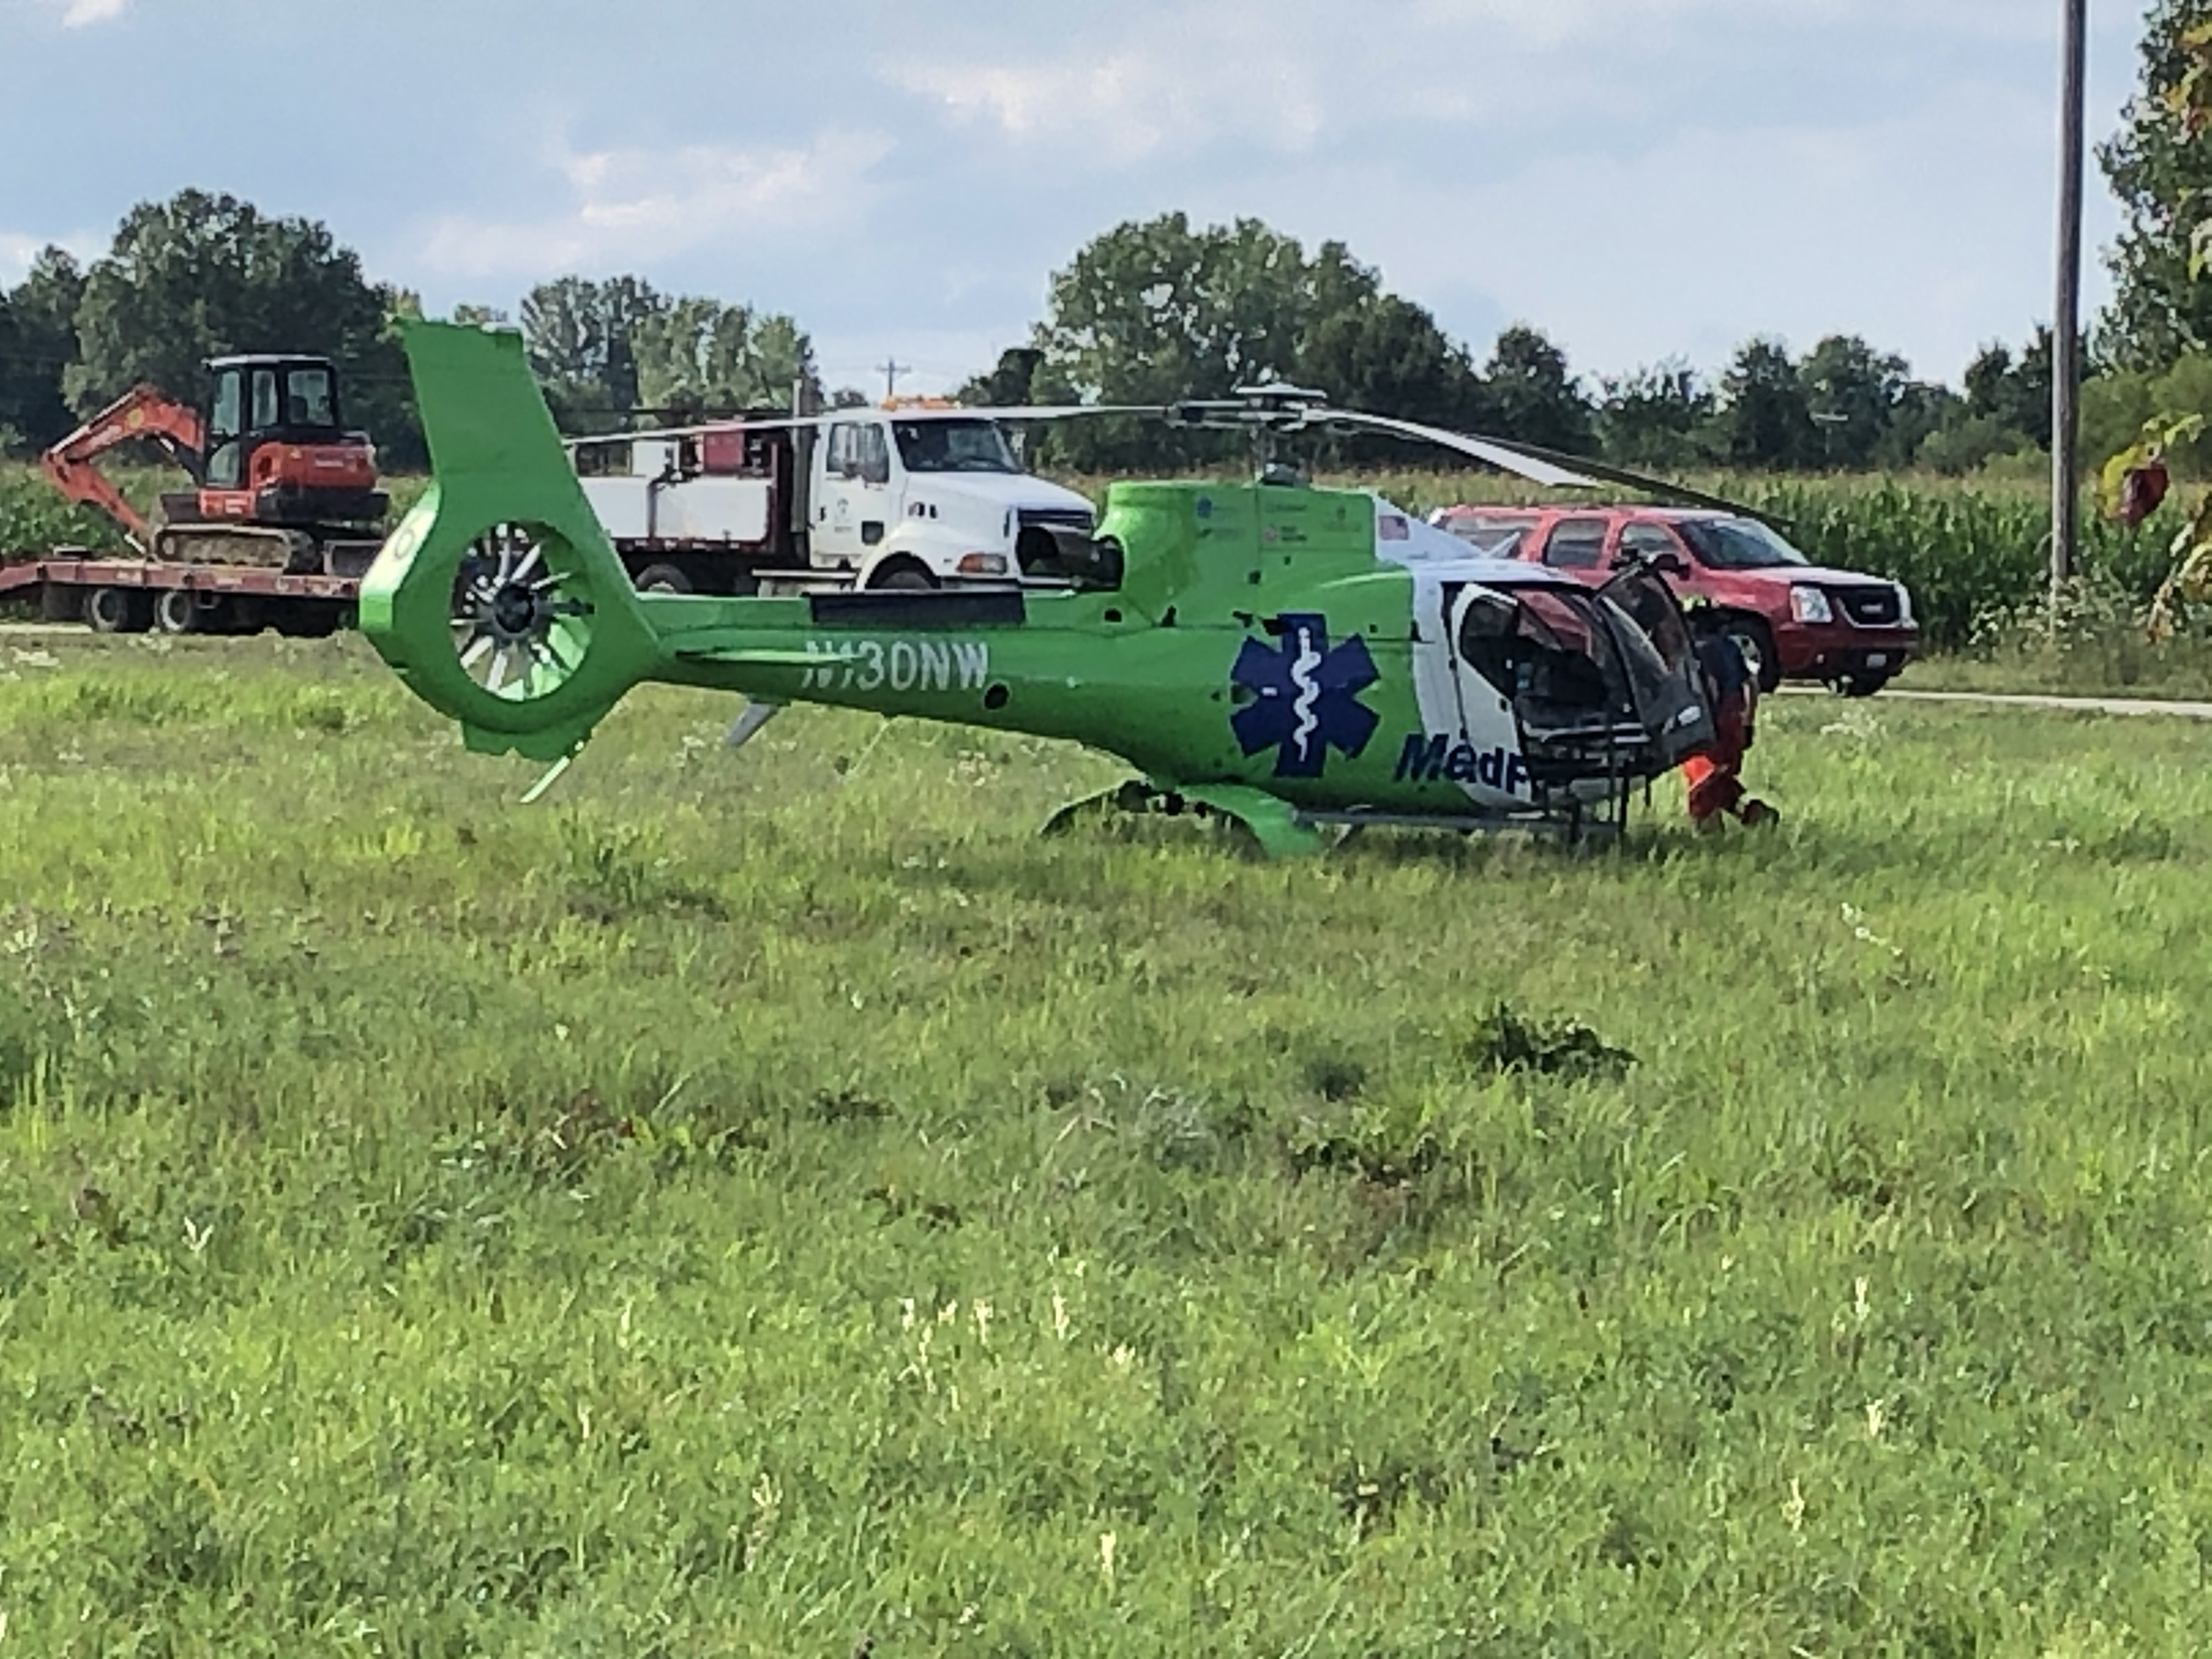 Troopers with the Ohio State Highway Patrol said one person was killed and another has been airlifted to the hospital after a two-vehicle crash at State Route 521 and Galena Road in Delaware. (WSYX/WTTE)